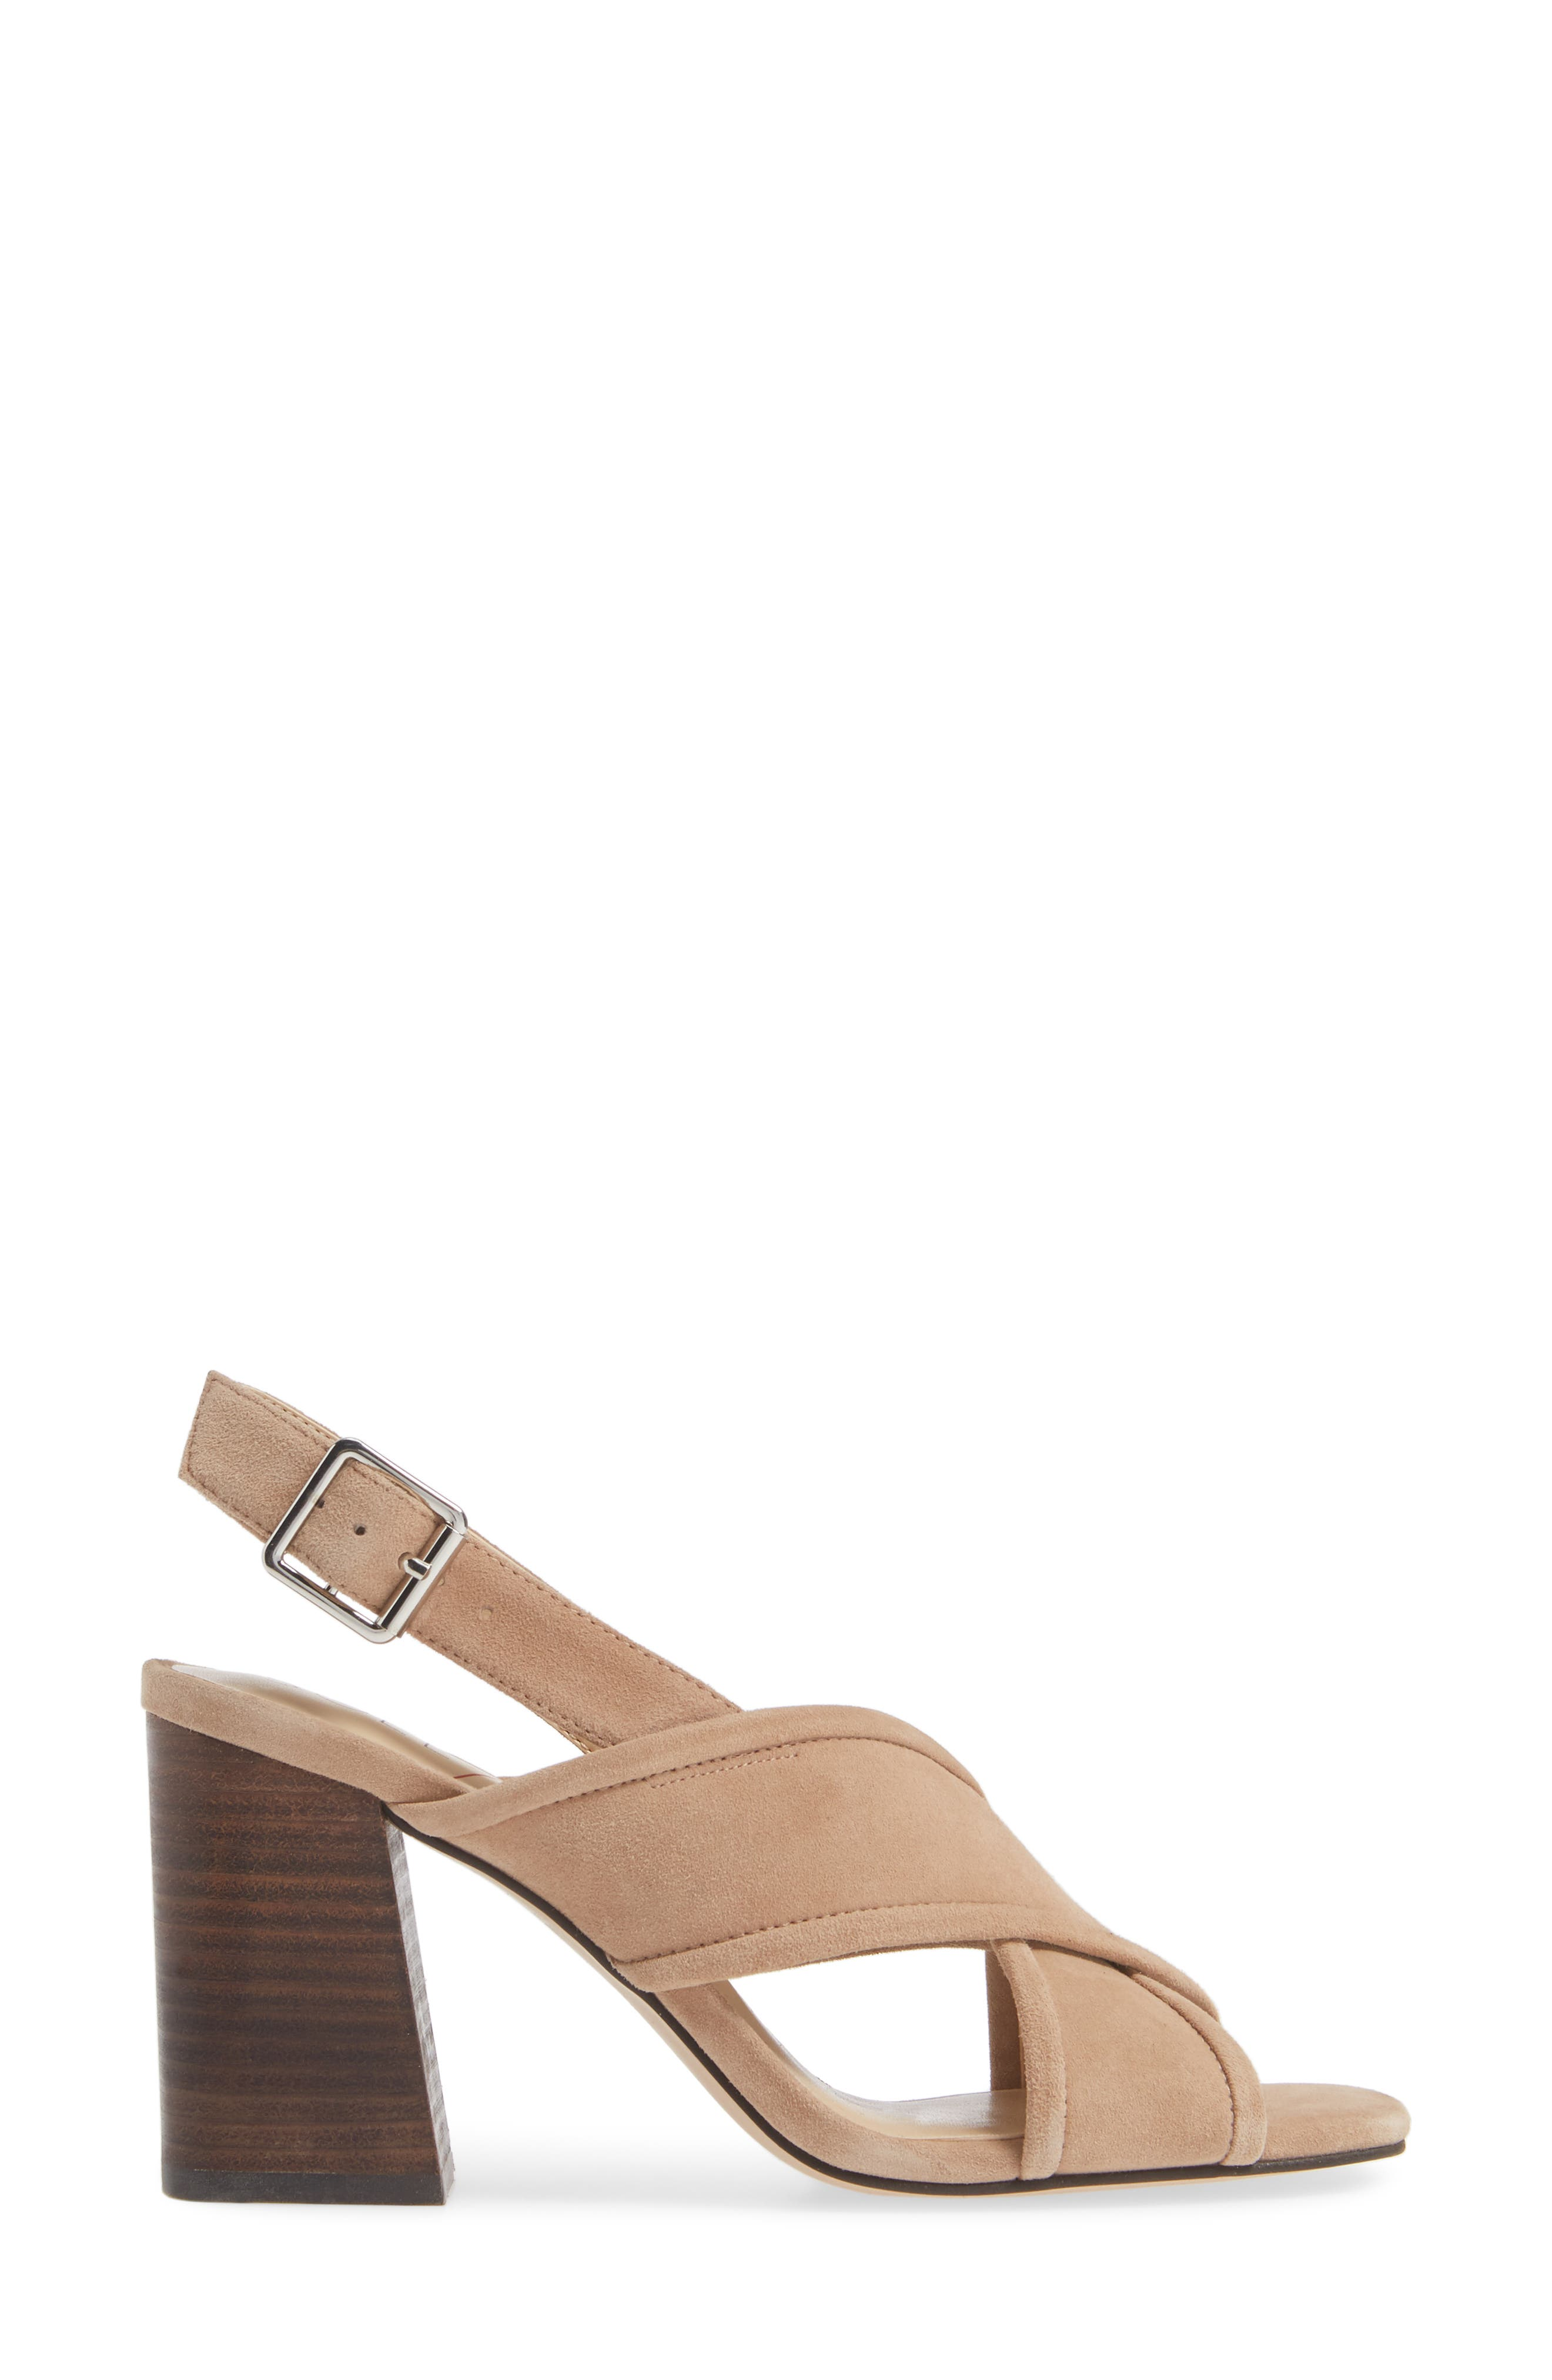 Joree Slingback Sandal,                             Alternate thumbnail 3, color,                             DUSTED TAUPE SUEDE